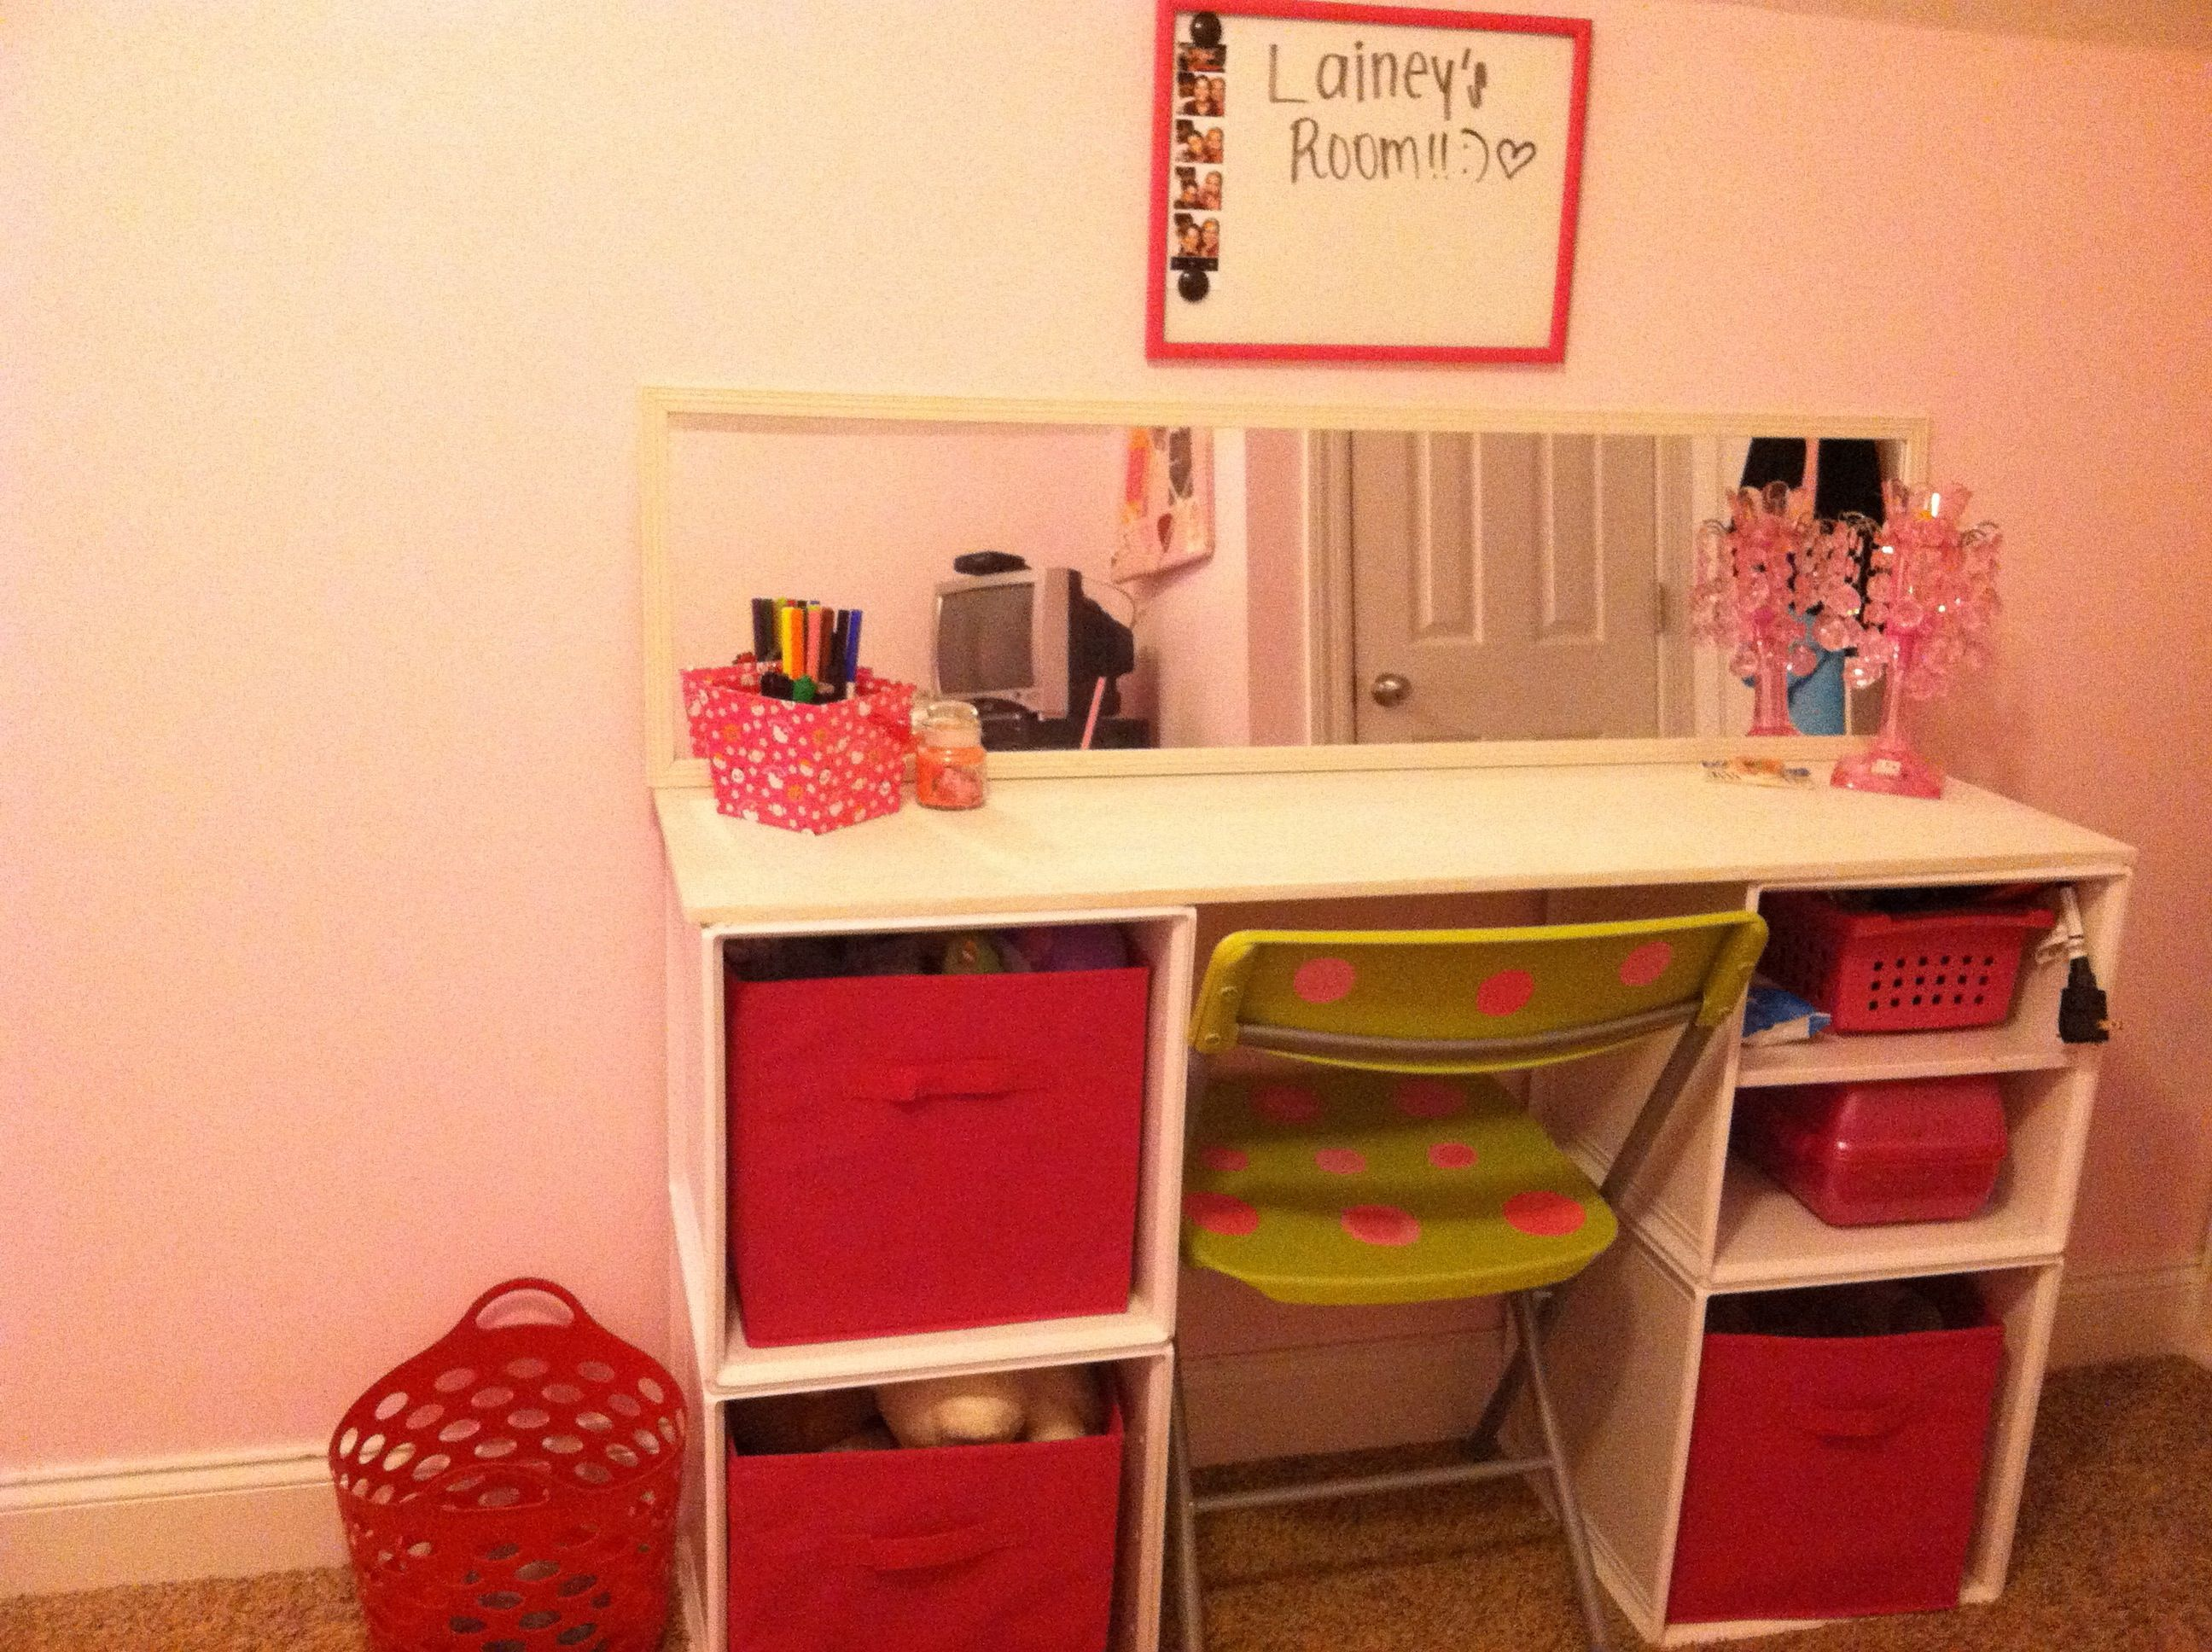 DIY Vanity we made for Lainey really cheap using stackable